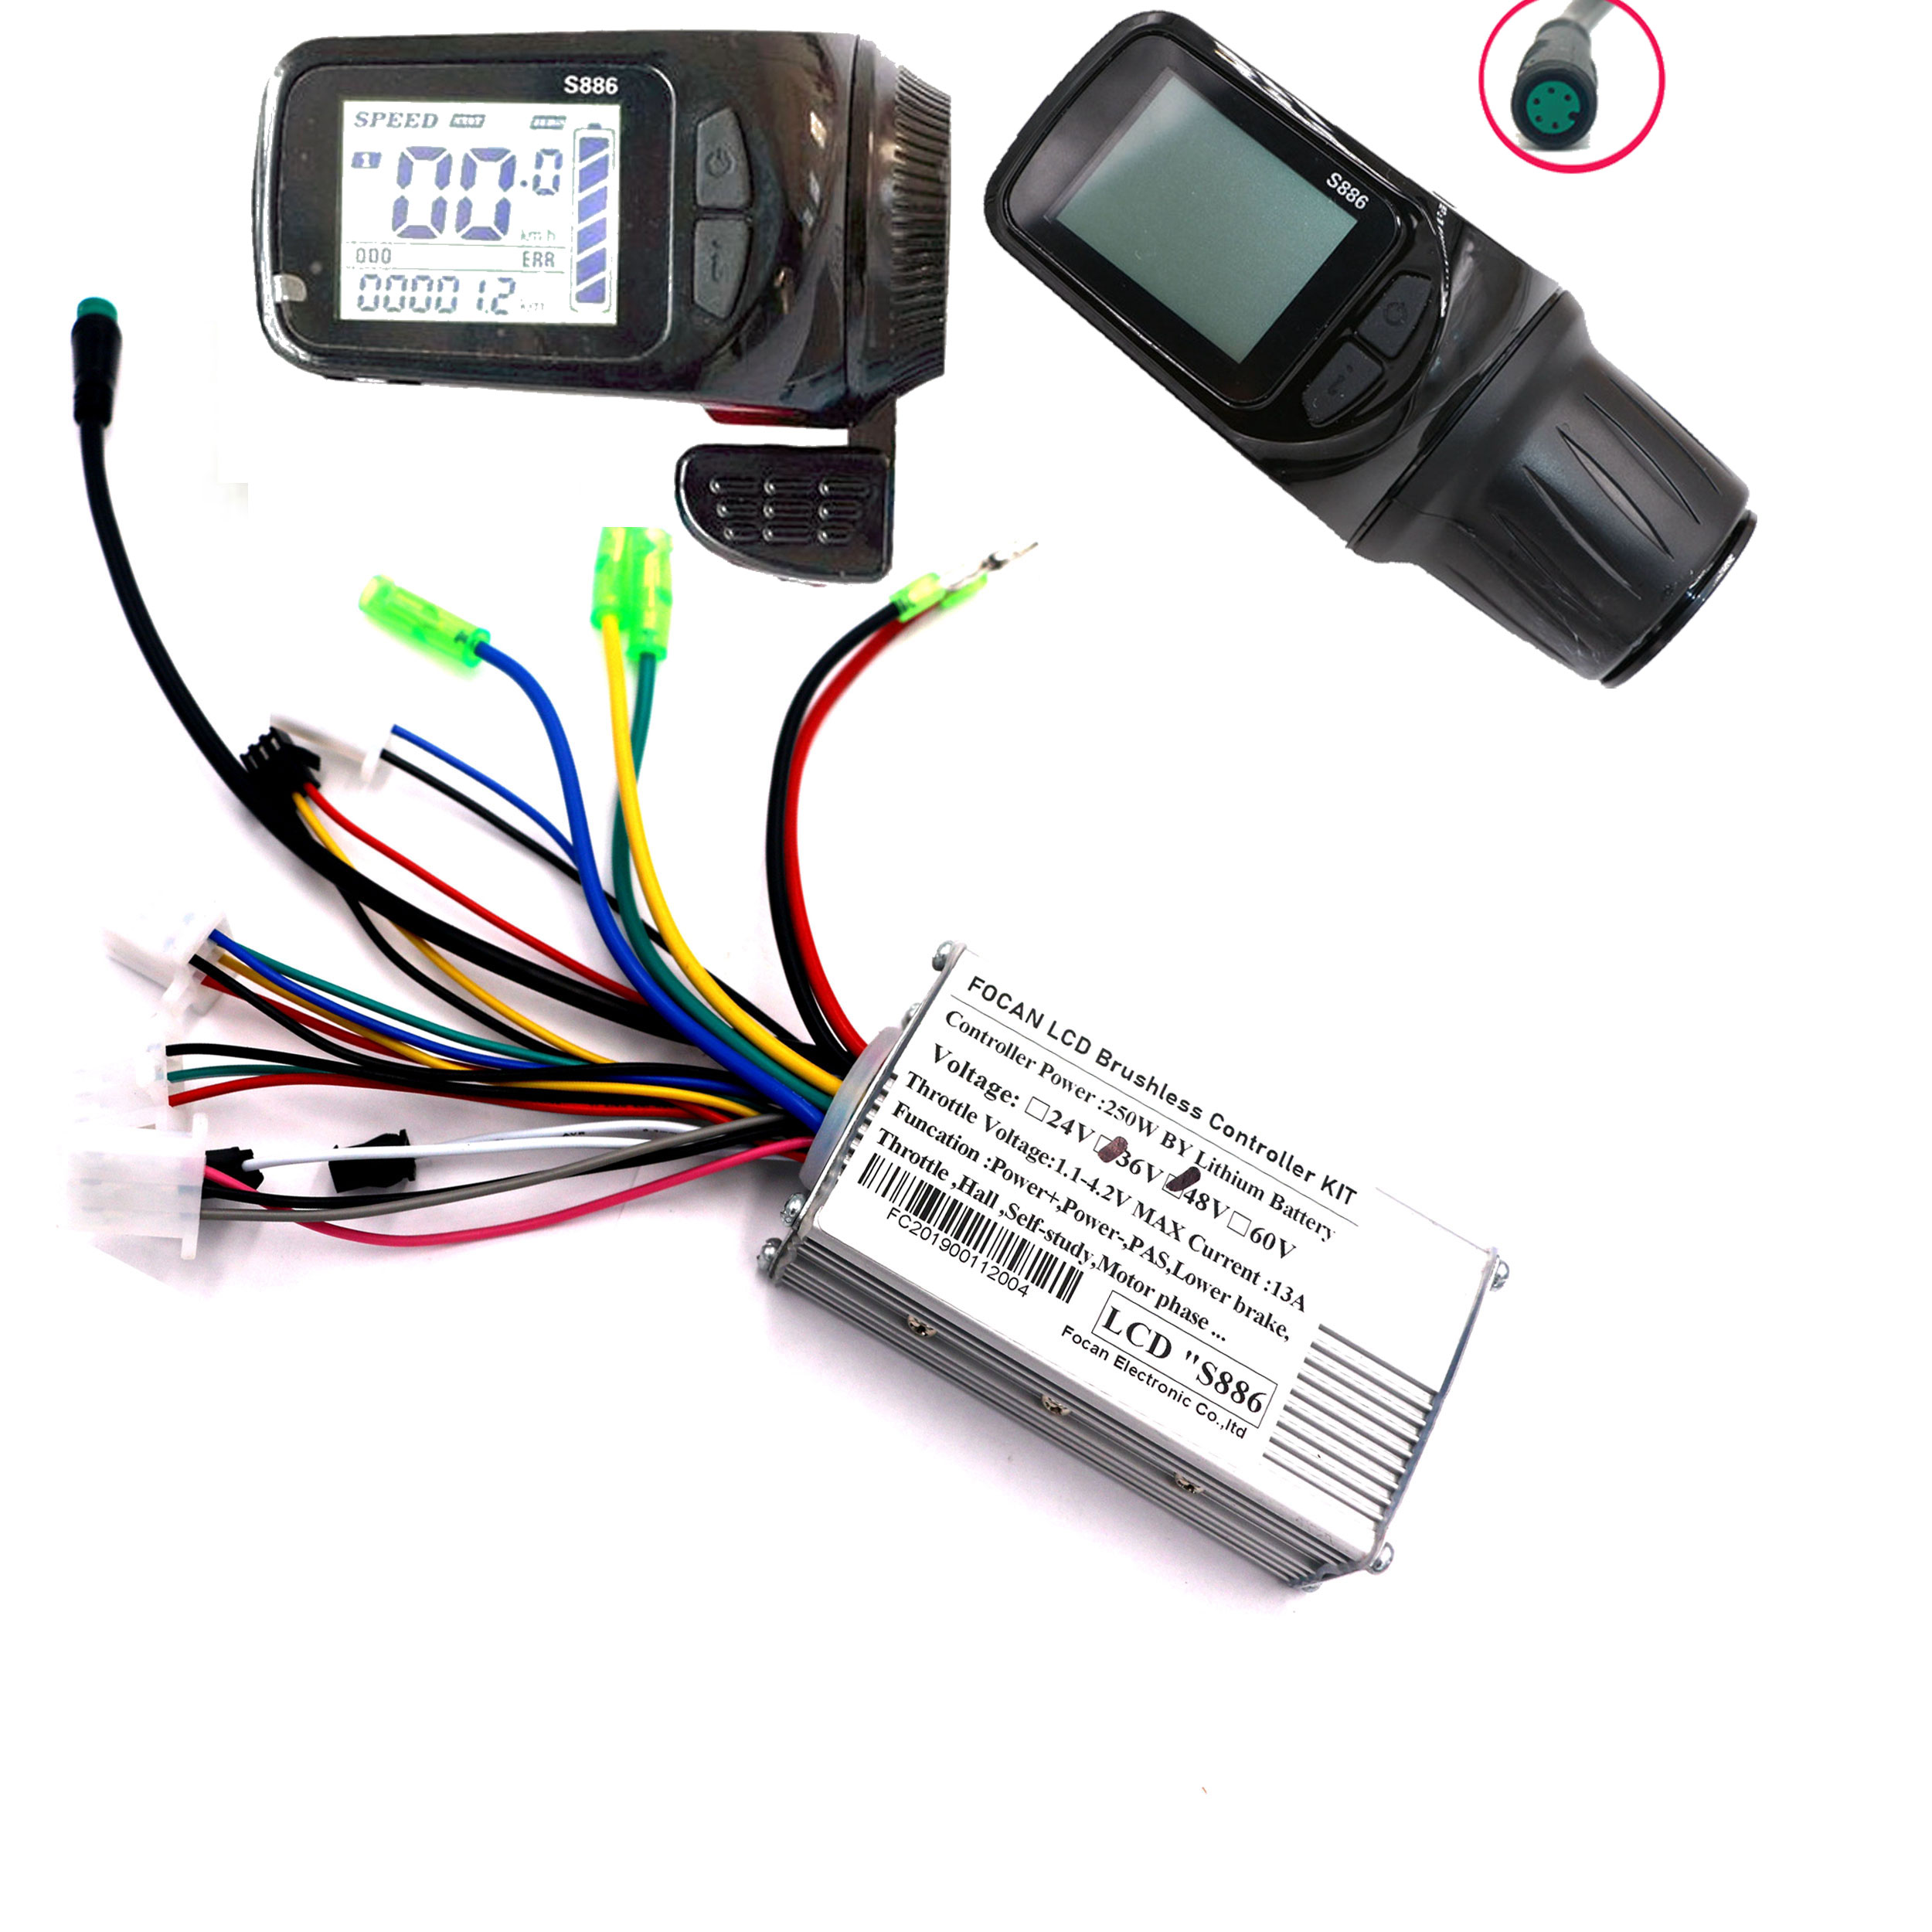 FOCAN 36V 48V 250W Electric waterproof Bicycle Brushless Controller Kit Scooter Motor Controller with LCD Display Panel Control|Accessories|   - AliExpress